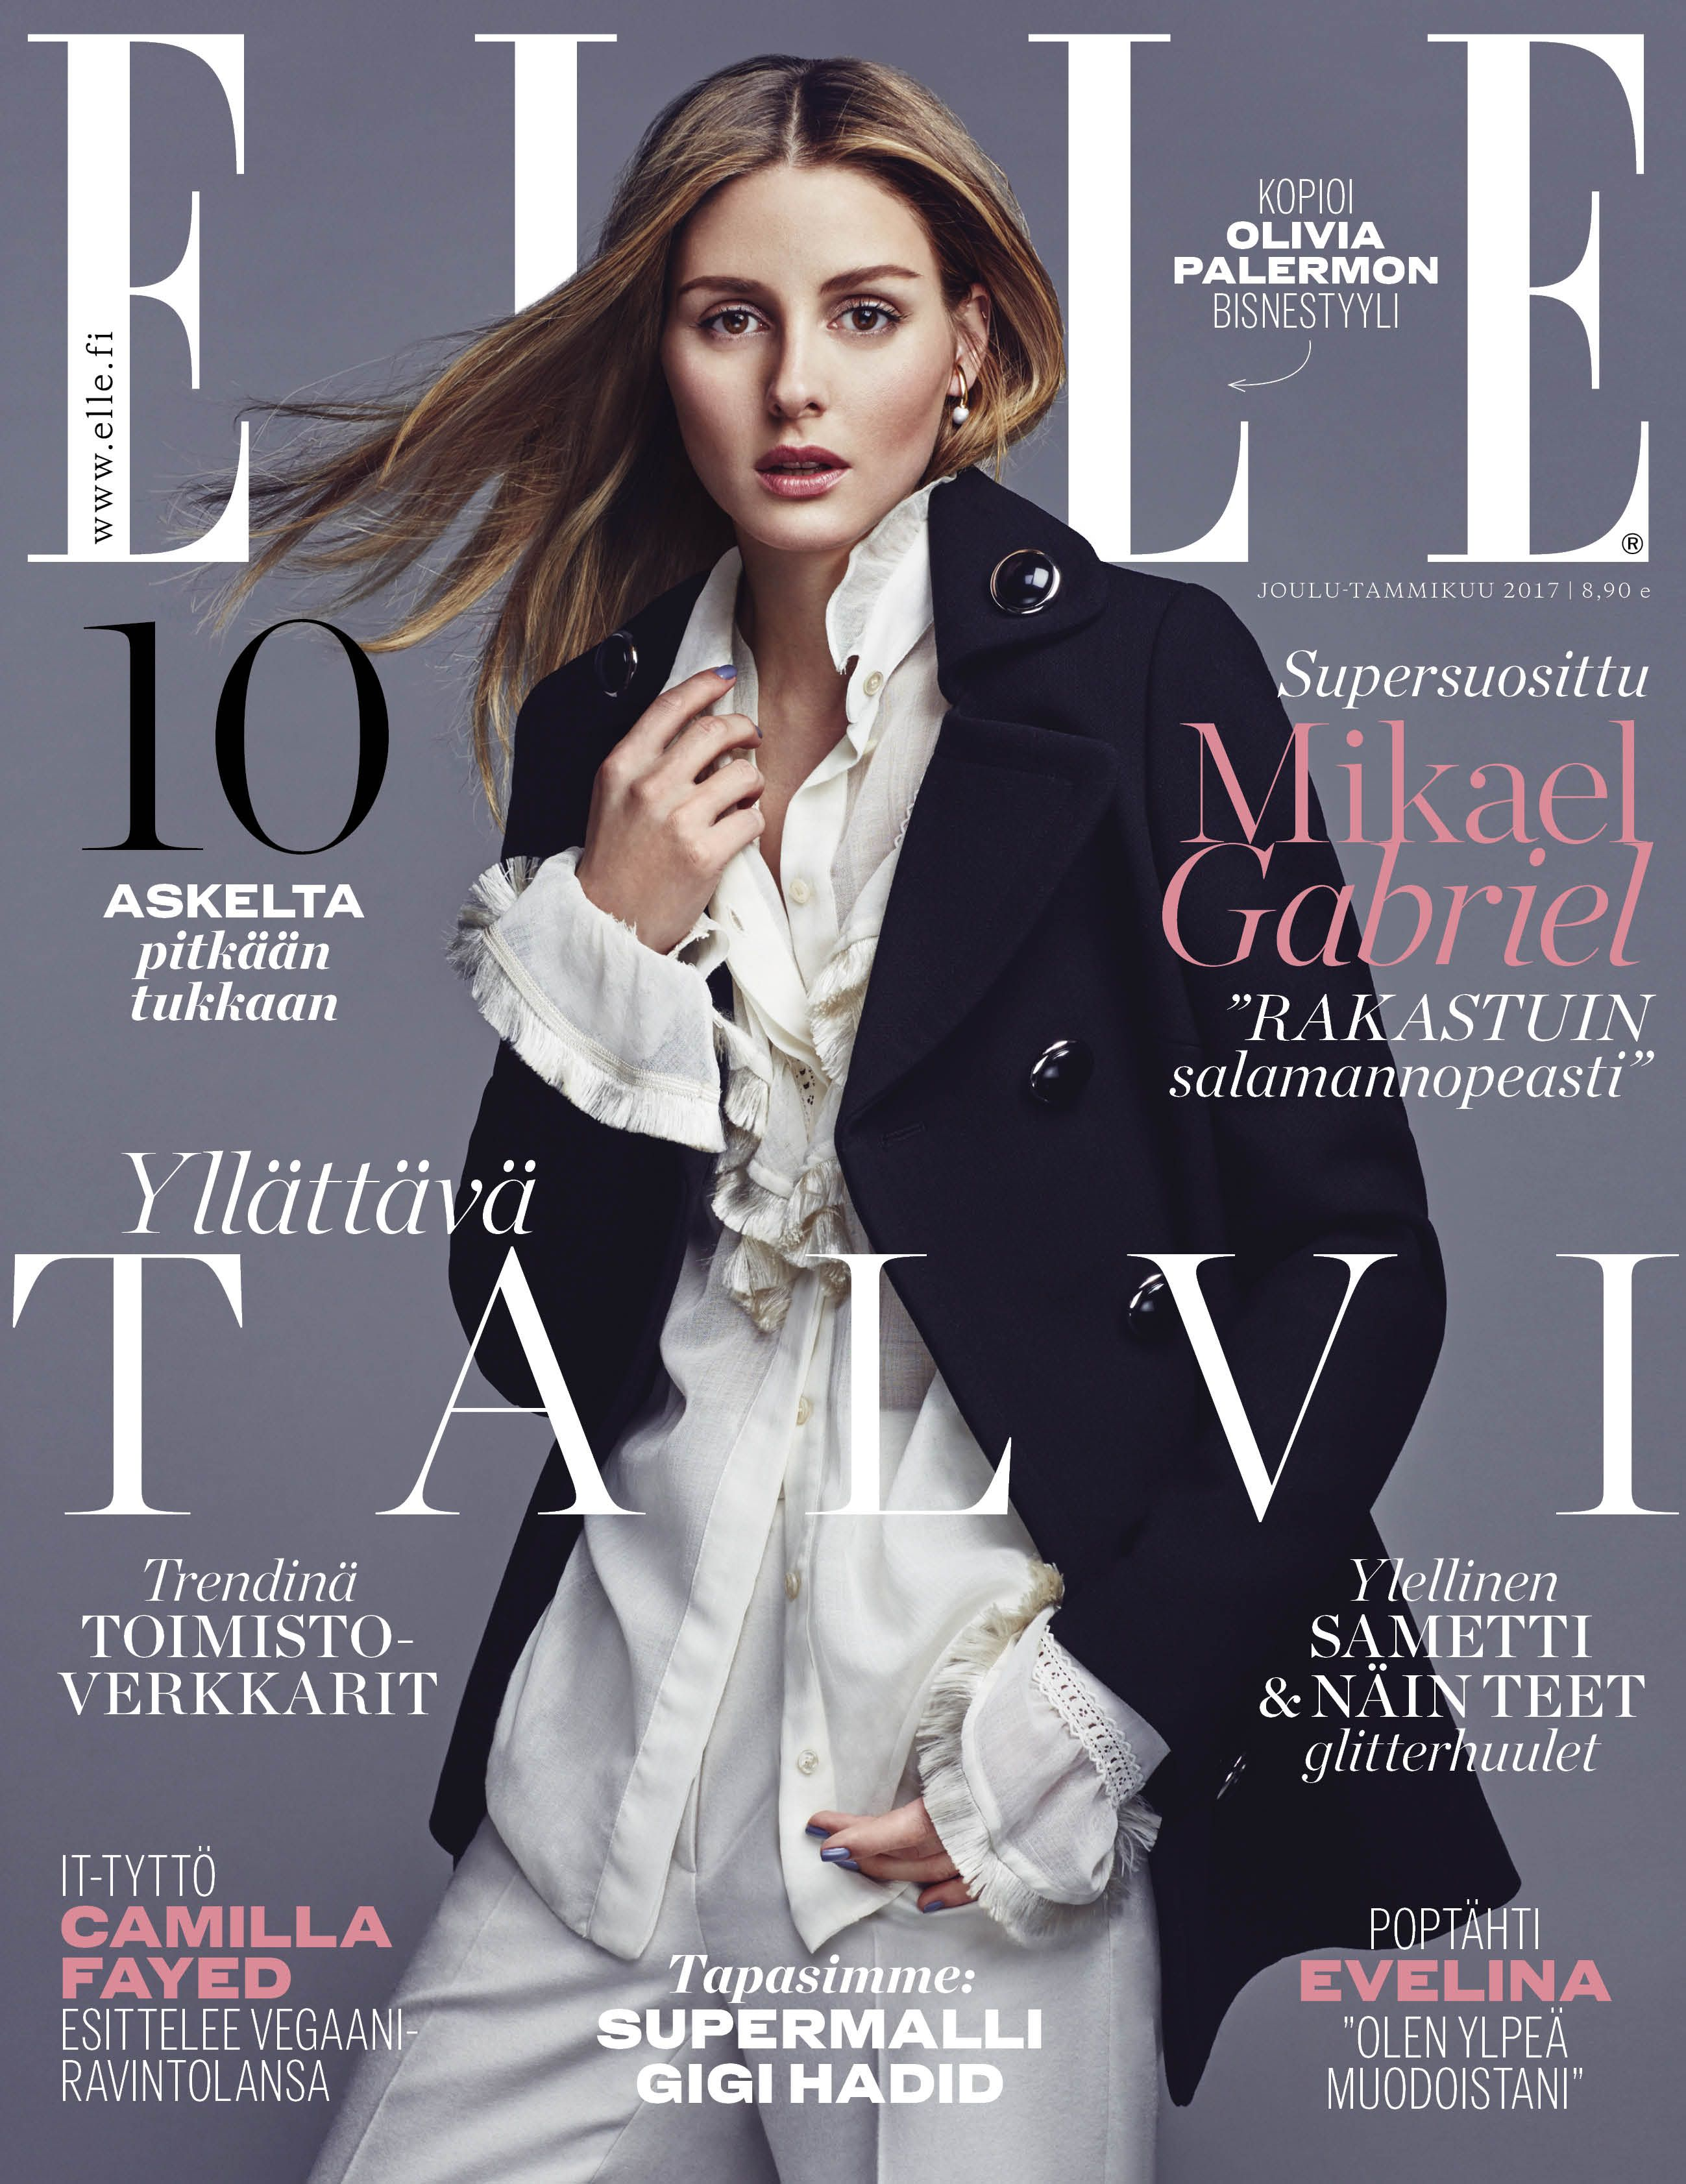 Olivia Palermo for ELLE Finland December/January 2016/2017 cover